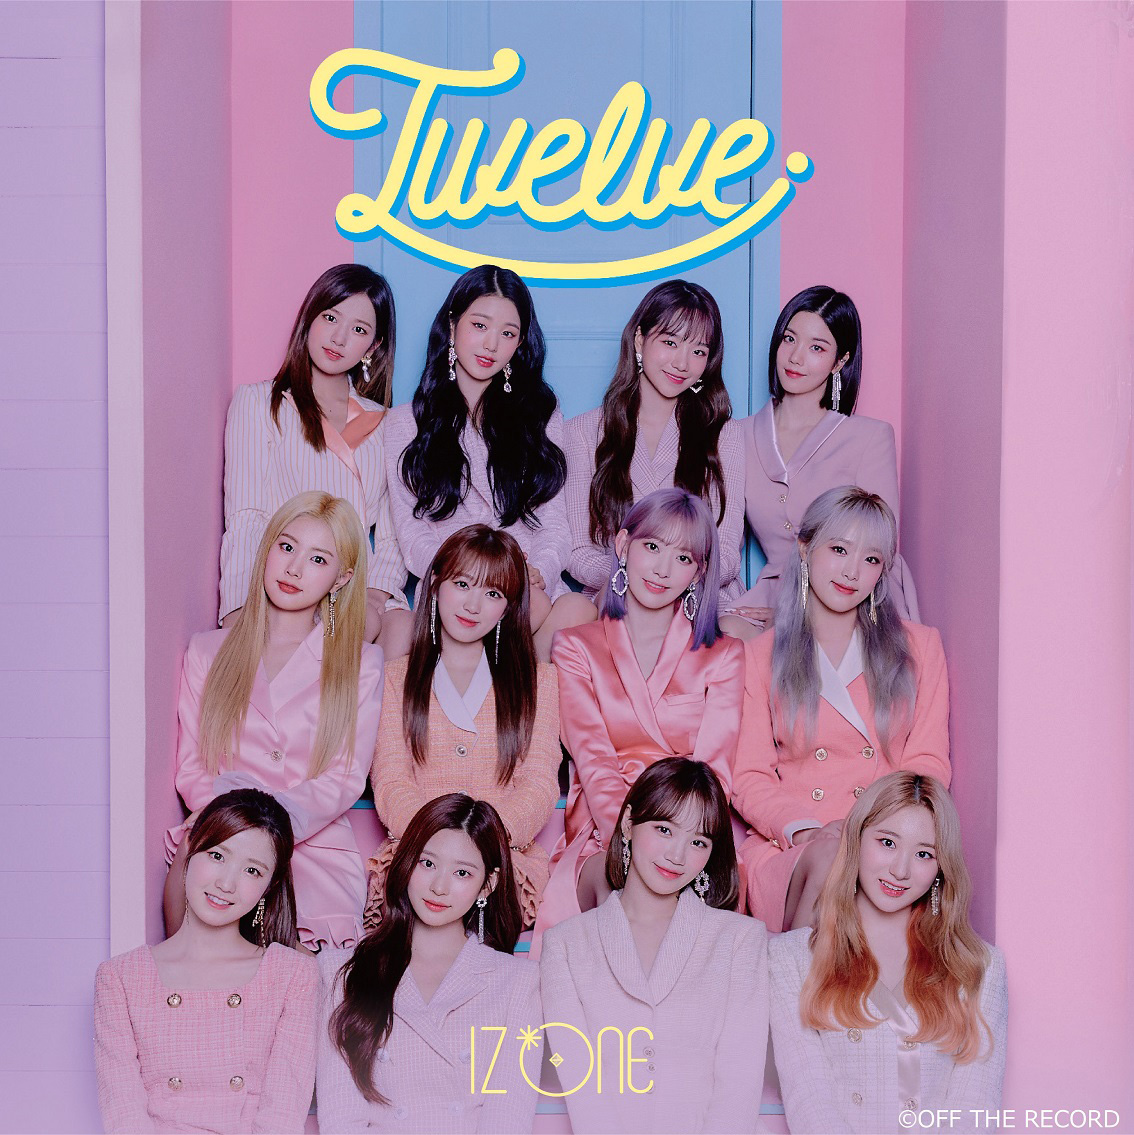 IZ*ONE 日本1stアルバム「Twelve」【WIZ*ONE盤】©OFF THE RECORD